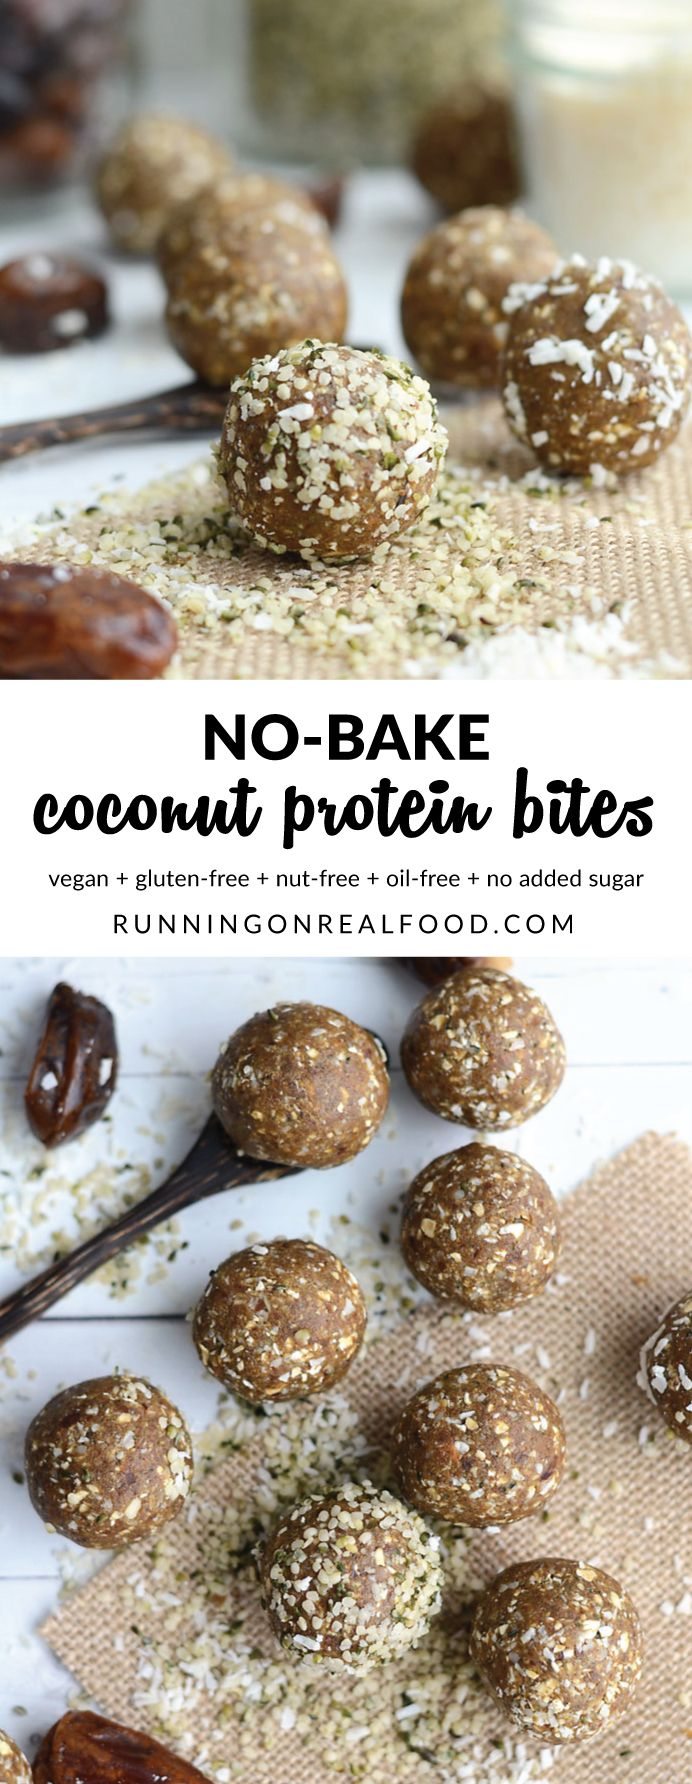 These no-bake coconut protein bites are nut-free, oil-free, gluten-free and taste amazing! They're made with wholesome ingredients like dates, hemp seeds, vegan protein powder and coconut. Blend, roll, eat! Ready in minutes. Great snack, breakfast, dessert or pre-workout!  Recipe: http://runningonrealfood.com/no-bake-coconut-protein-bites/